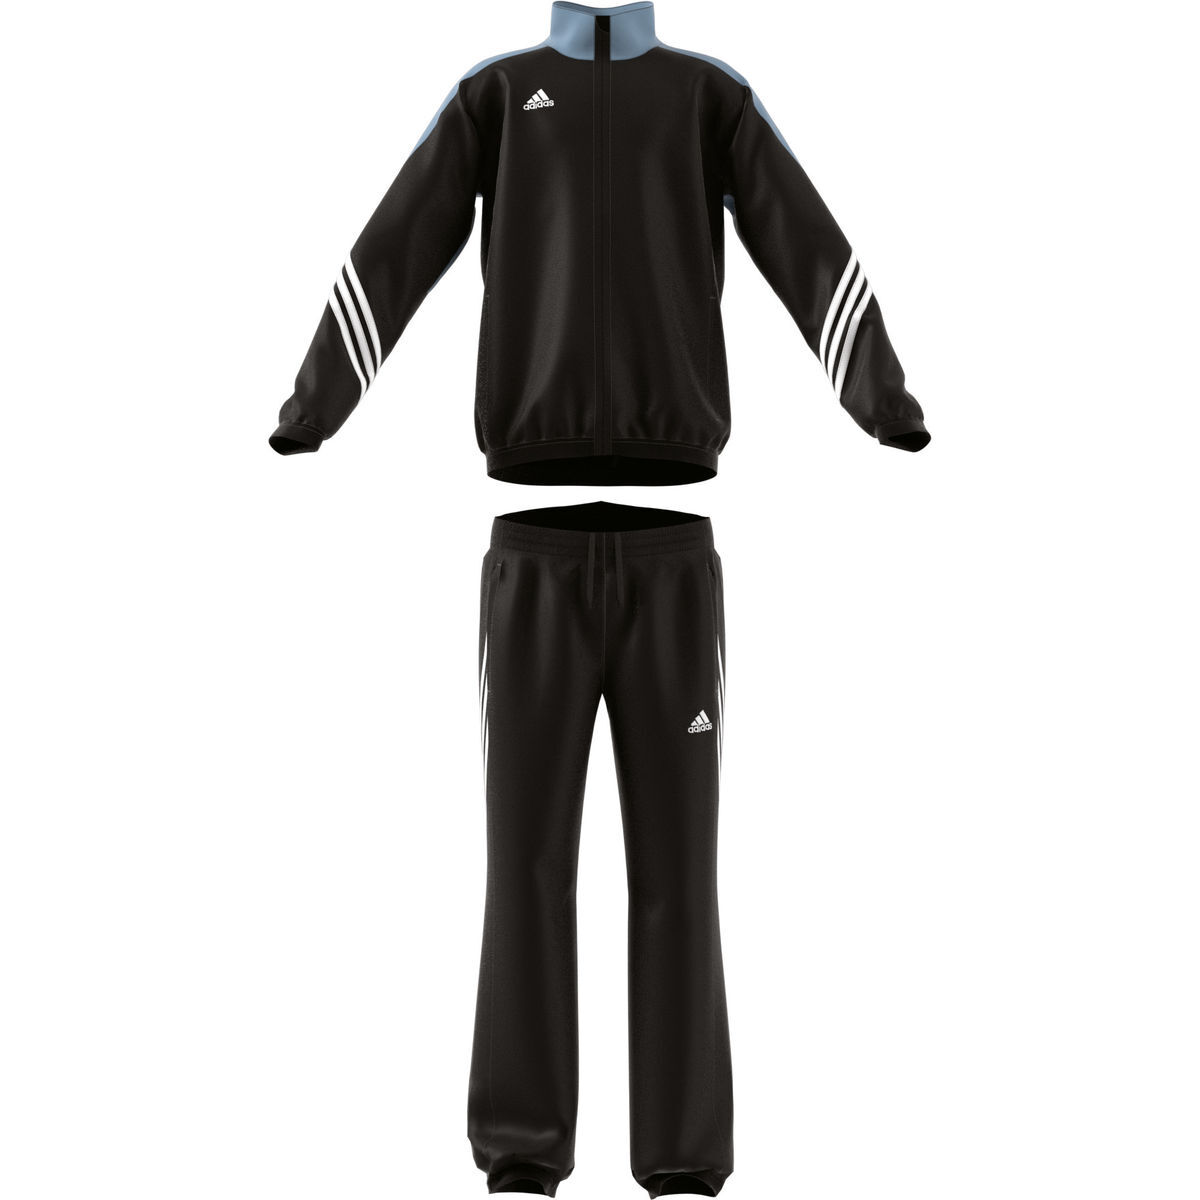 adidas jungen trainingsanzug sereno 14 pre suit schwarz 164 karstadt online shop. Black Bedroom Furniture Sets. Home Design Ideas